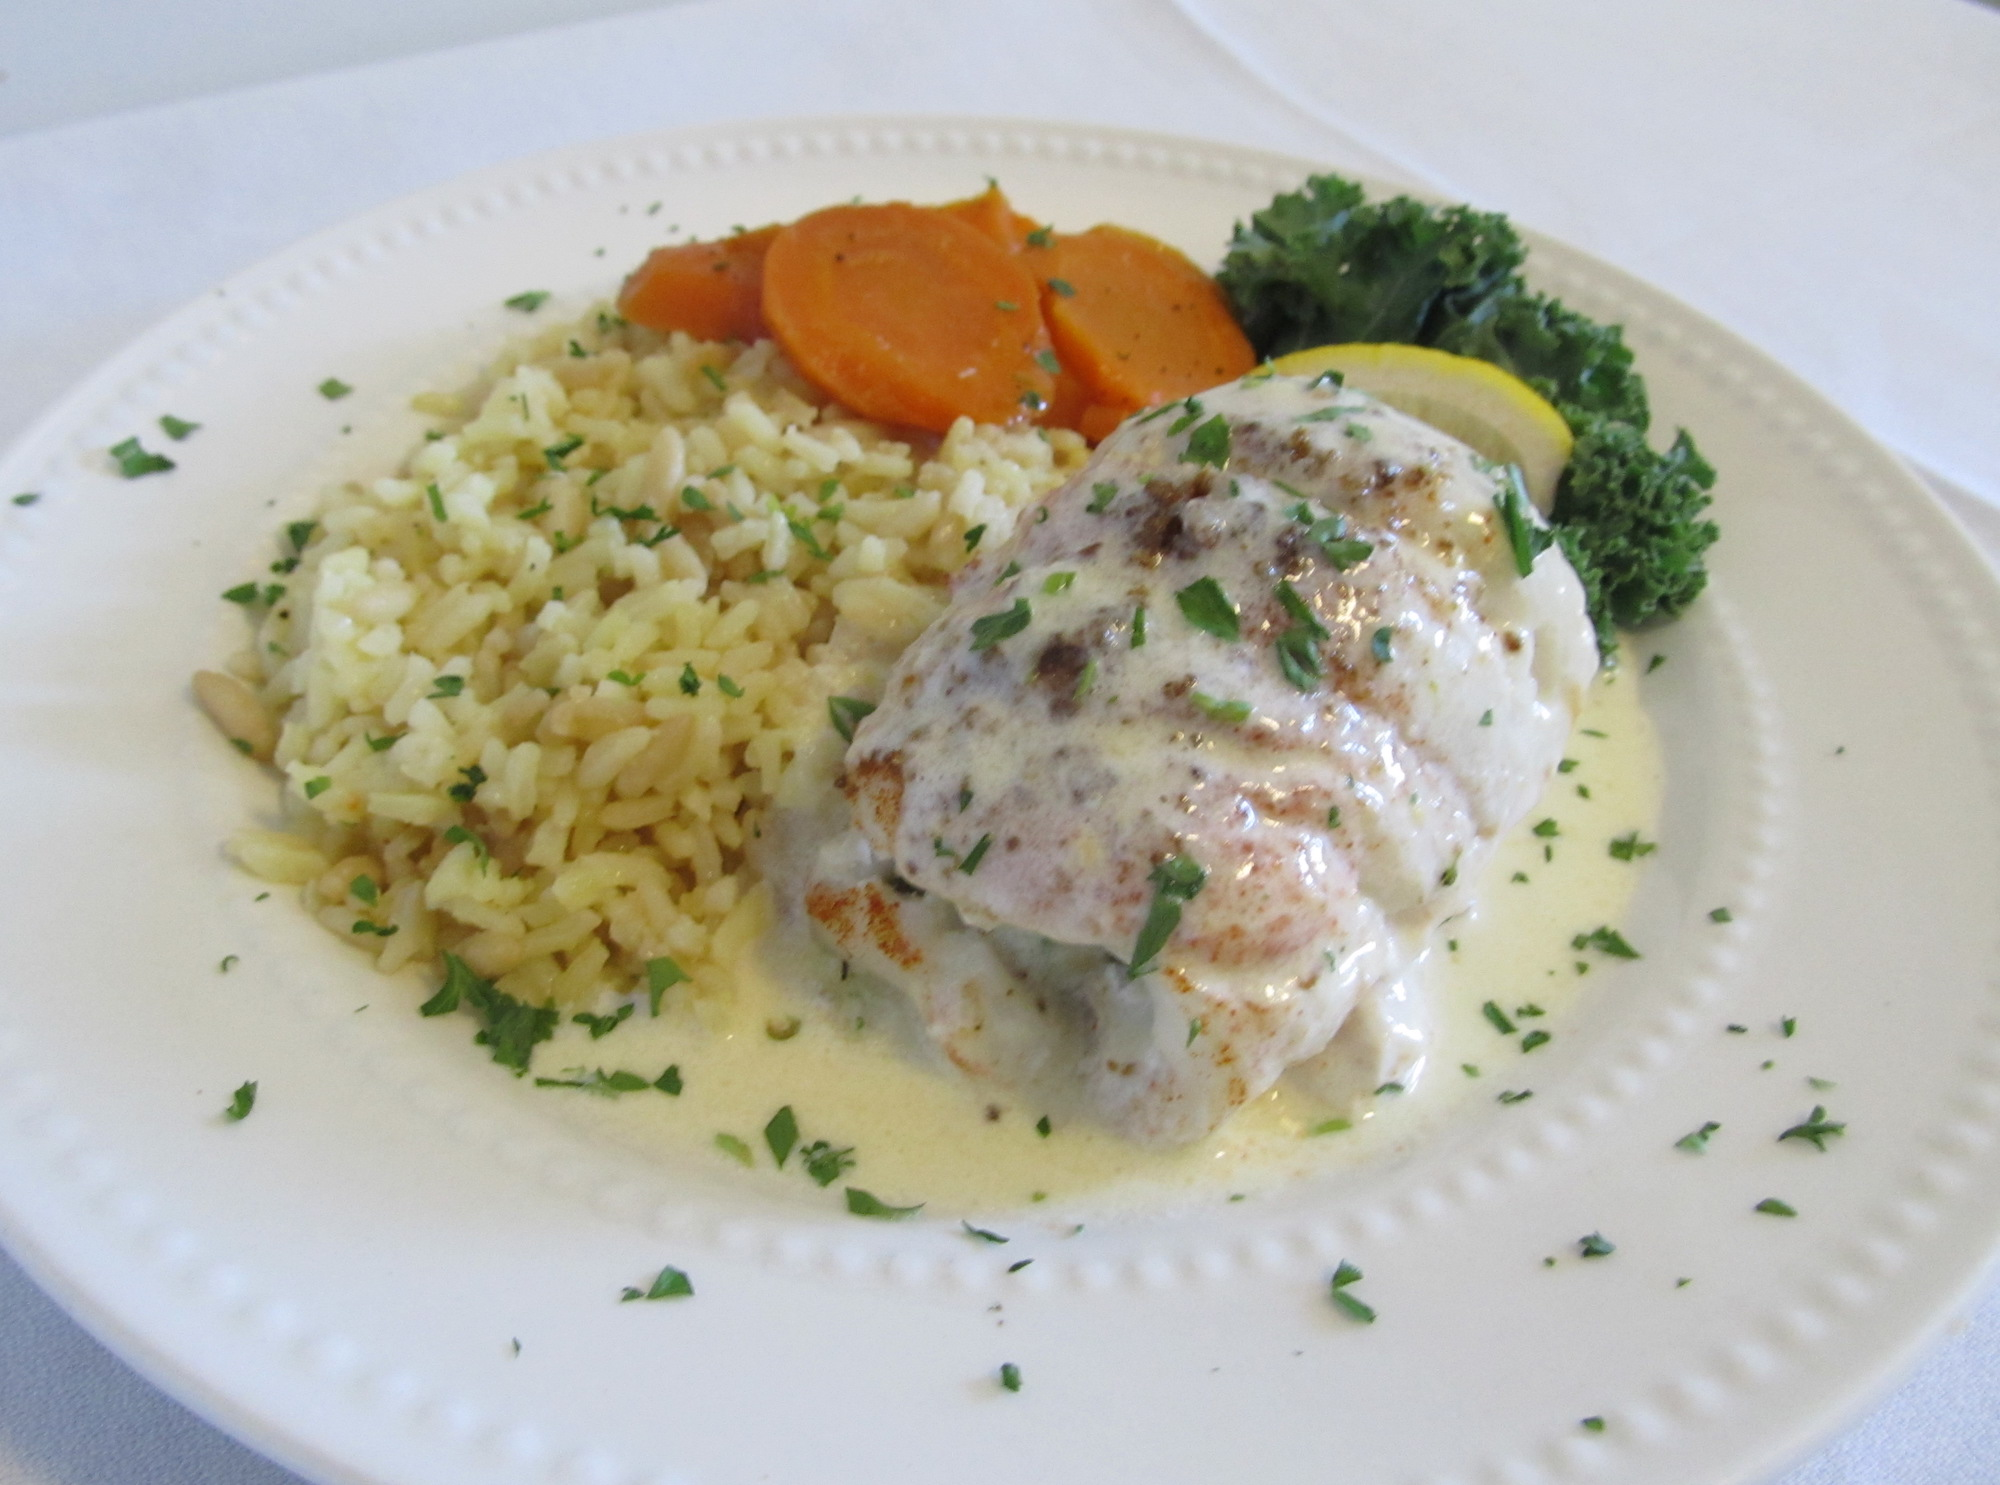 Baked Stuffed Haddock with a Buerre Blanc Sauce - a frequent 'special' on our dinner menu